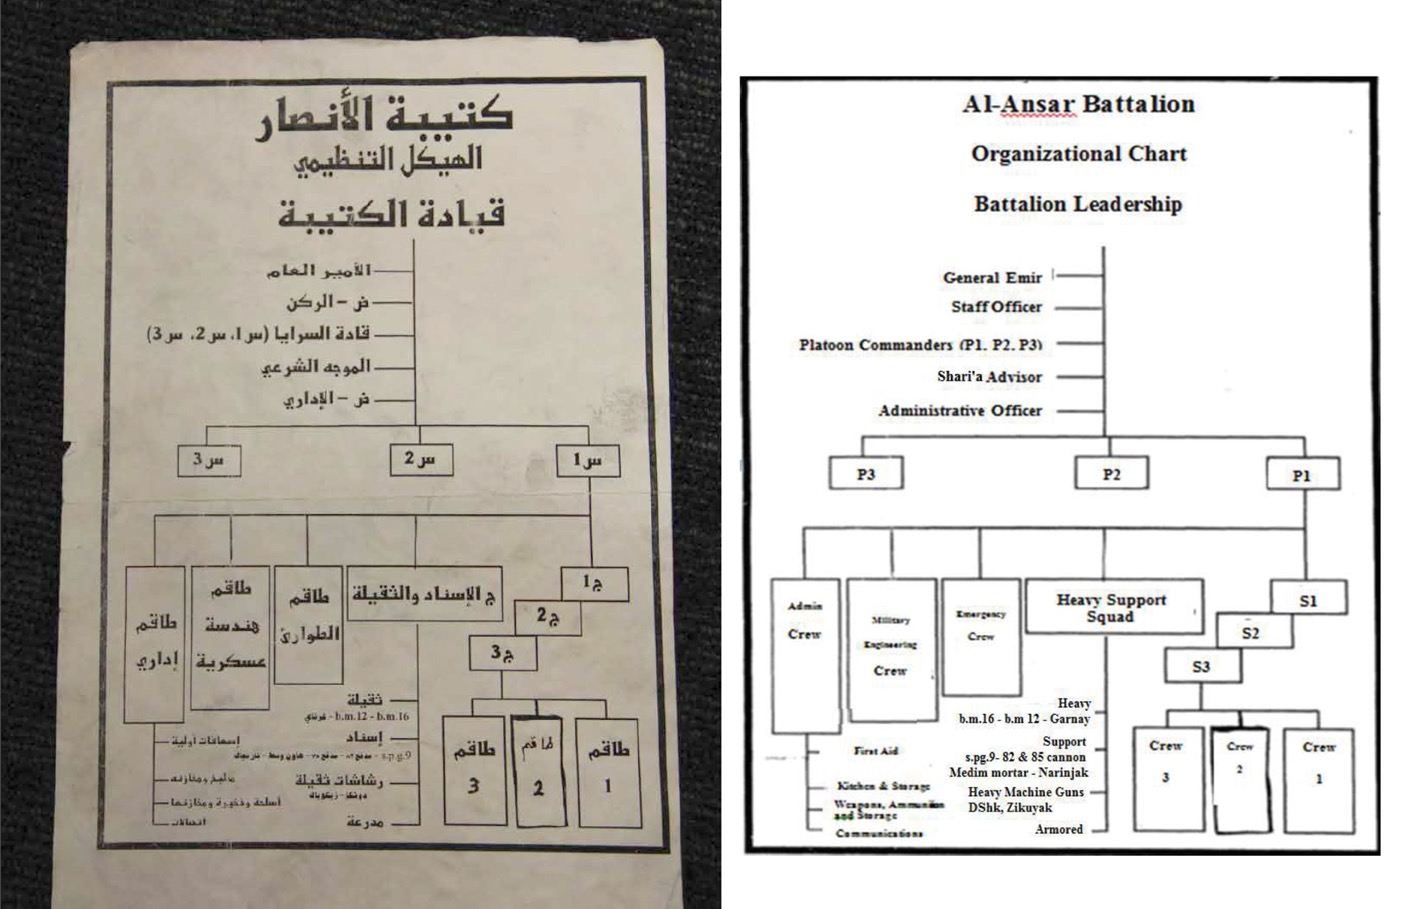 The organizational chart of the Ansar Battalion, a military group in Afghanistan composed of foreigners who fought alongside the Taliban. Abd al-Hadi was one of the group's early leaders.